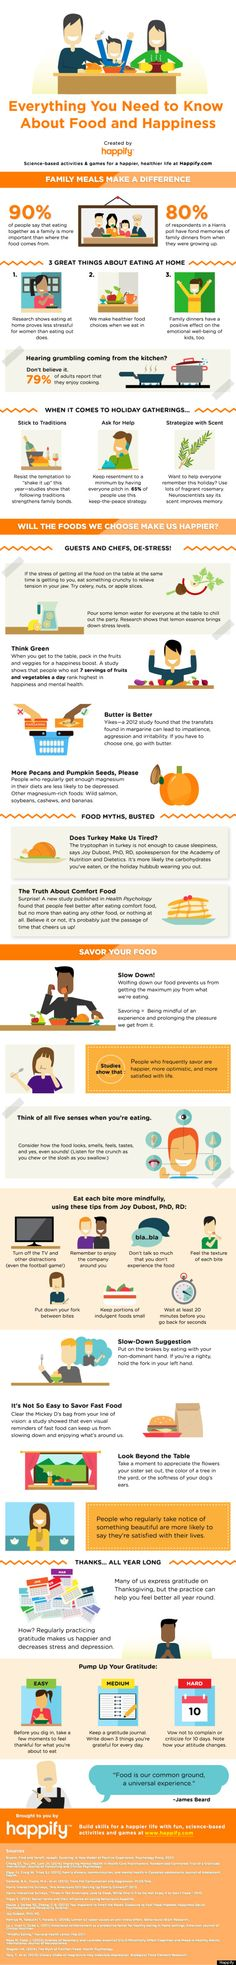 Everything You Need To Know About Food And Happiness #Food #Infographic